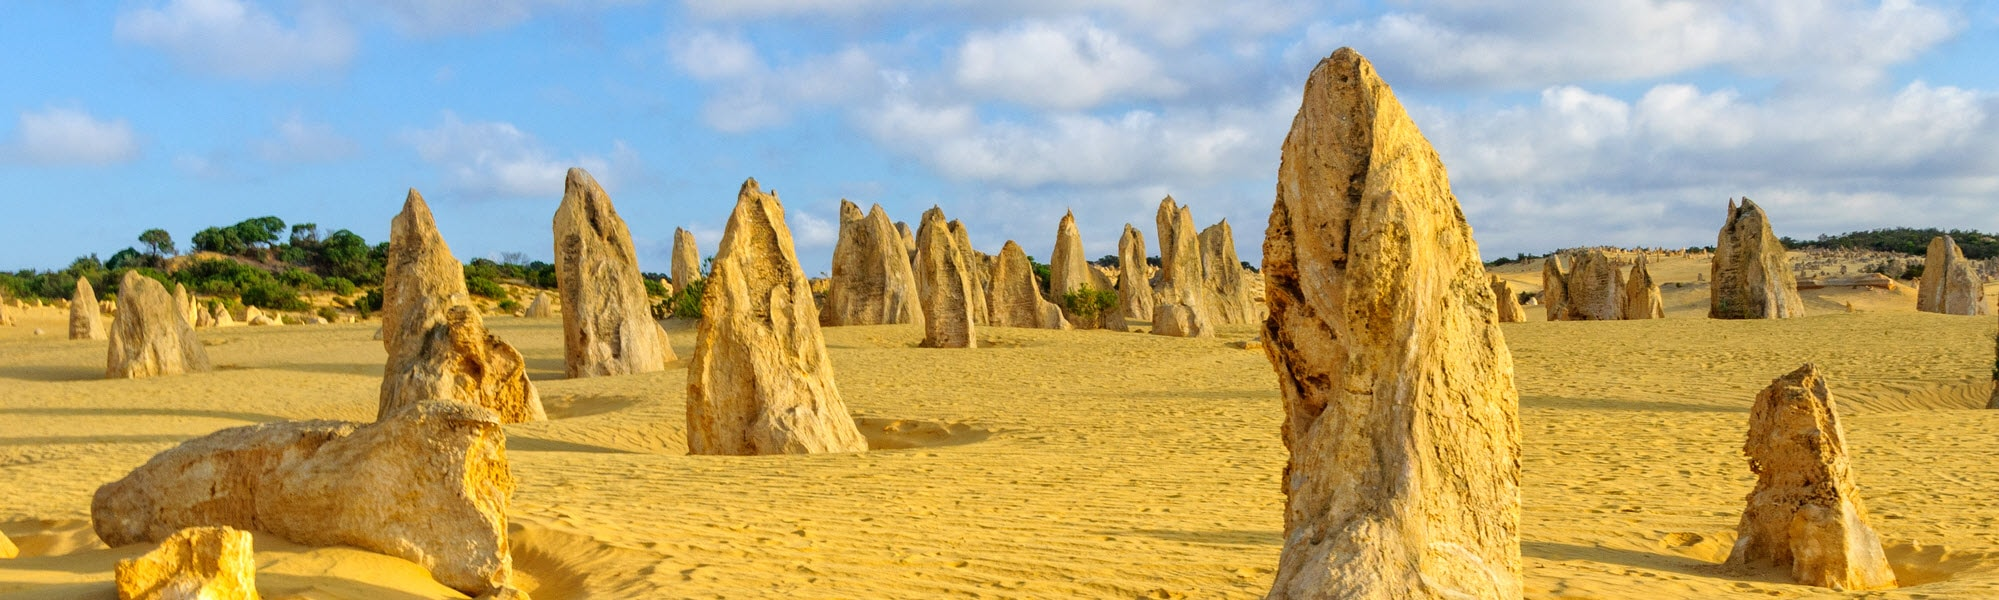 Pinnacles in the desert at Nambung National Park in WA.